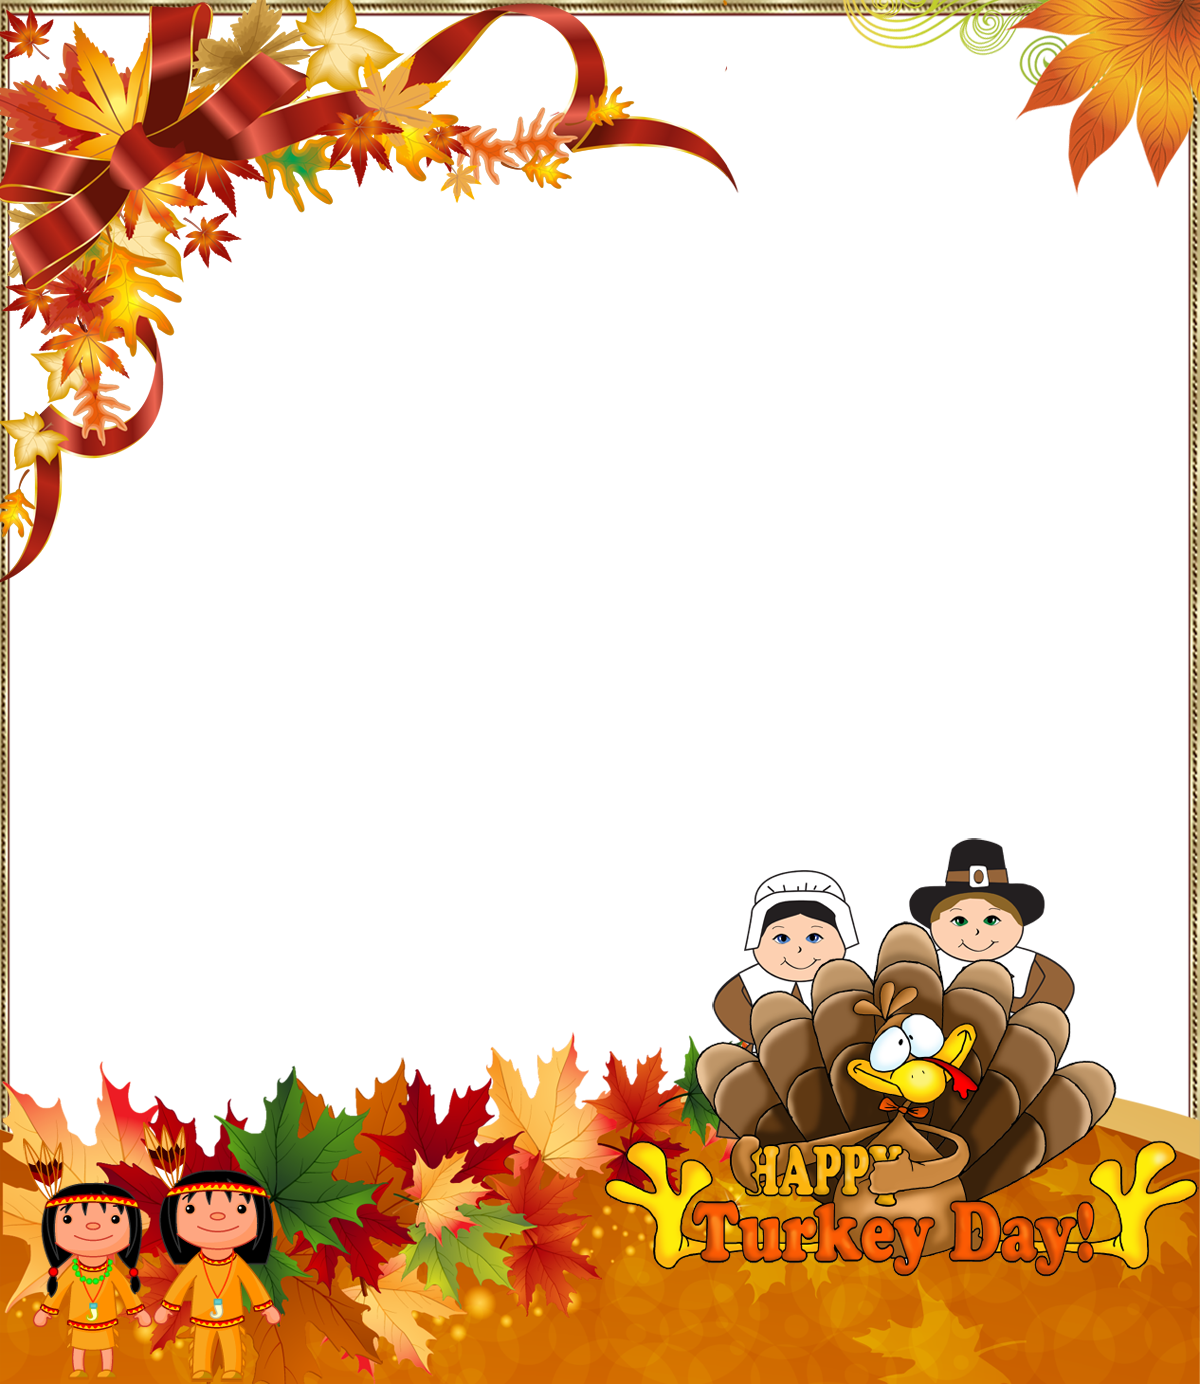 Corner clipart thanksgiving. Png photo frame happy